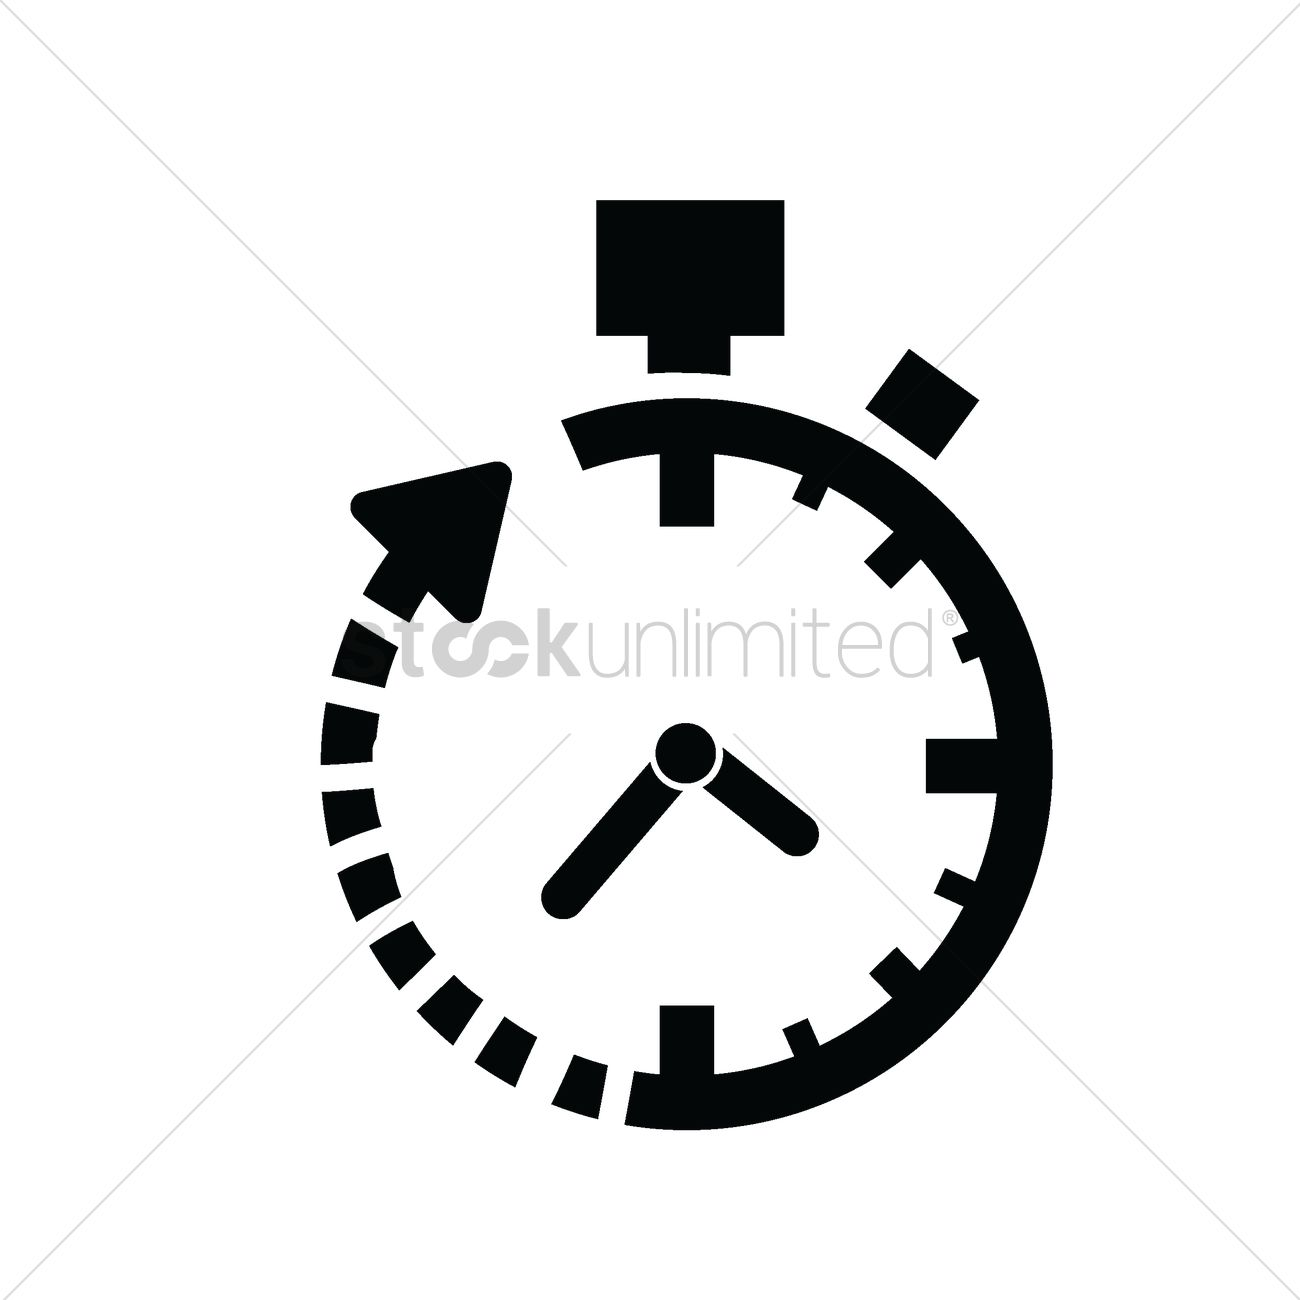 stopwatch vector image 2000343 stockunlimited rh stockunlimited com stopwatch vector image stopwatch vector image